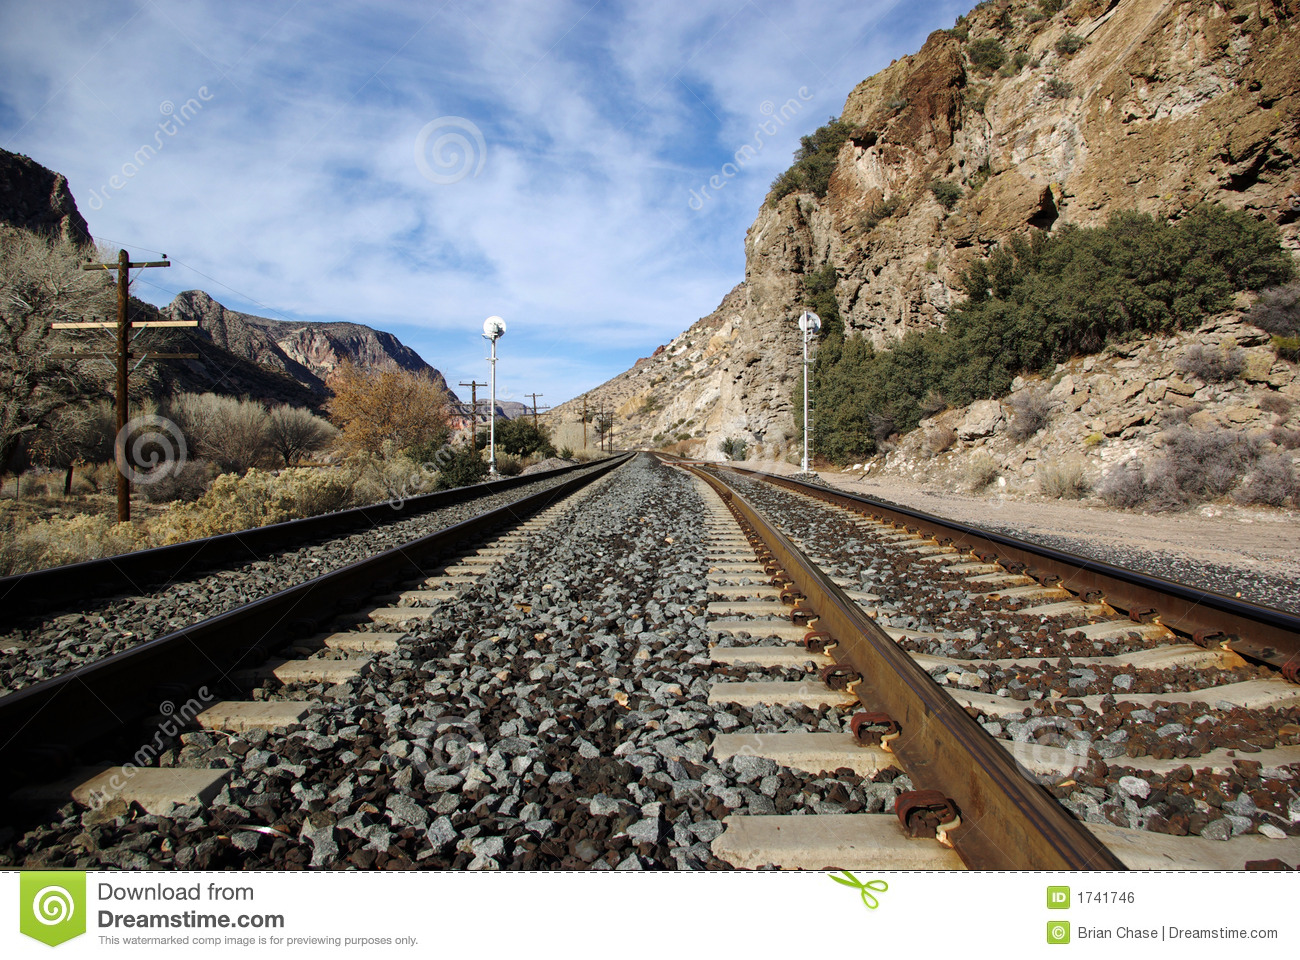 Railroad Tracks Royalty Free Stock Image - Image: 1741746